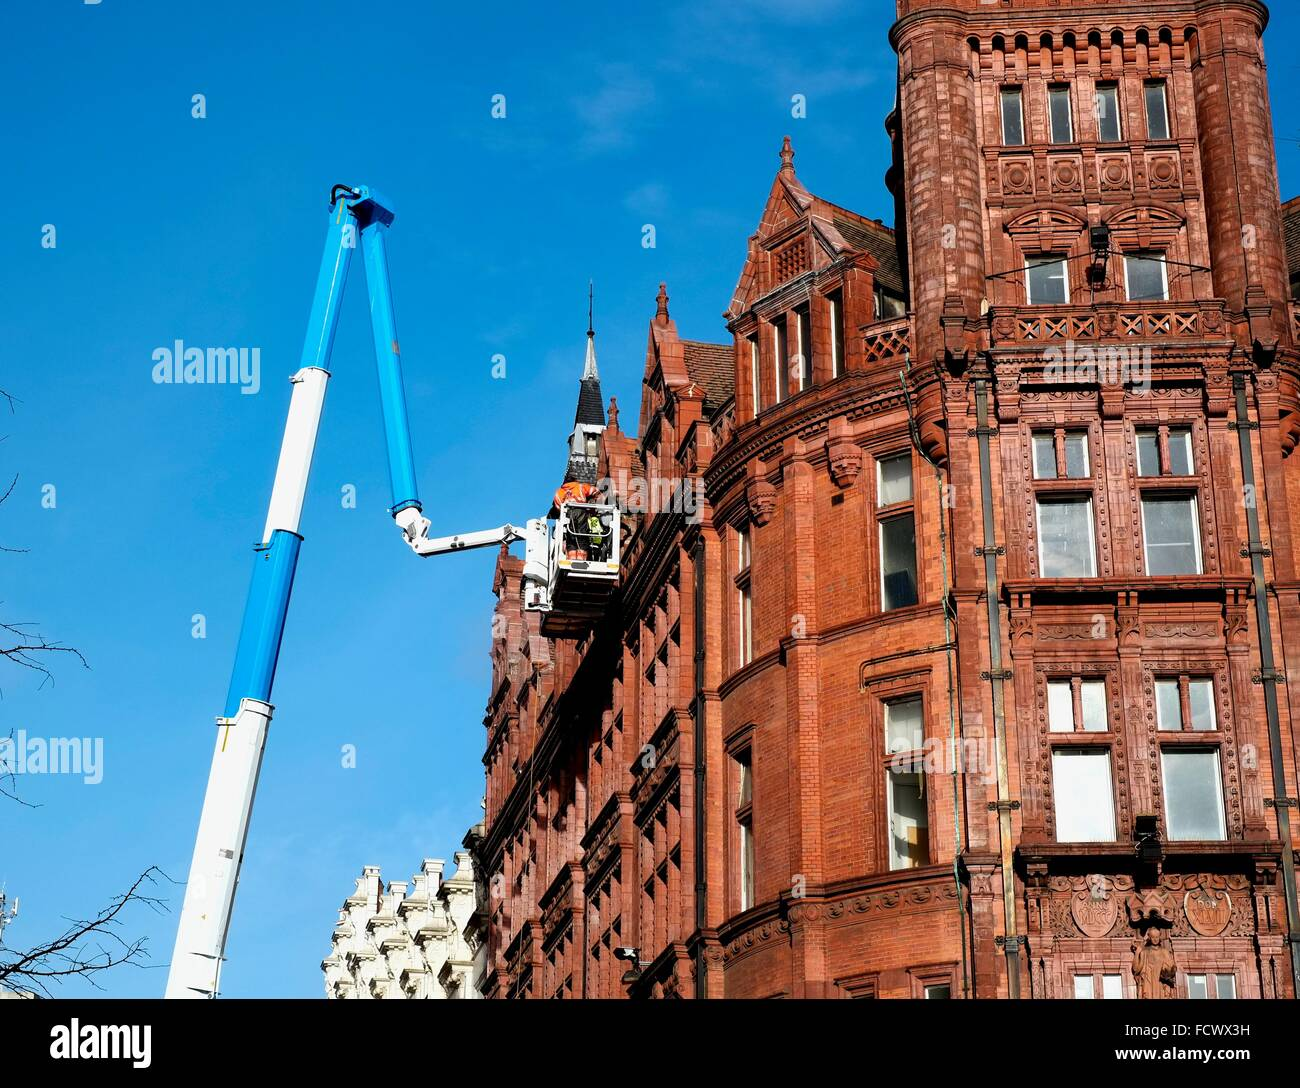 A Palfinger Platform P 480 being used to access the roof area of a building in Nottingham City centre - Stock Image